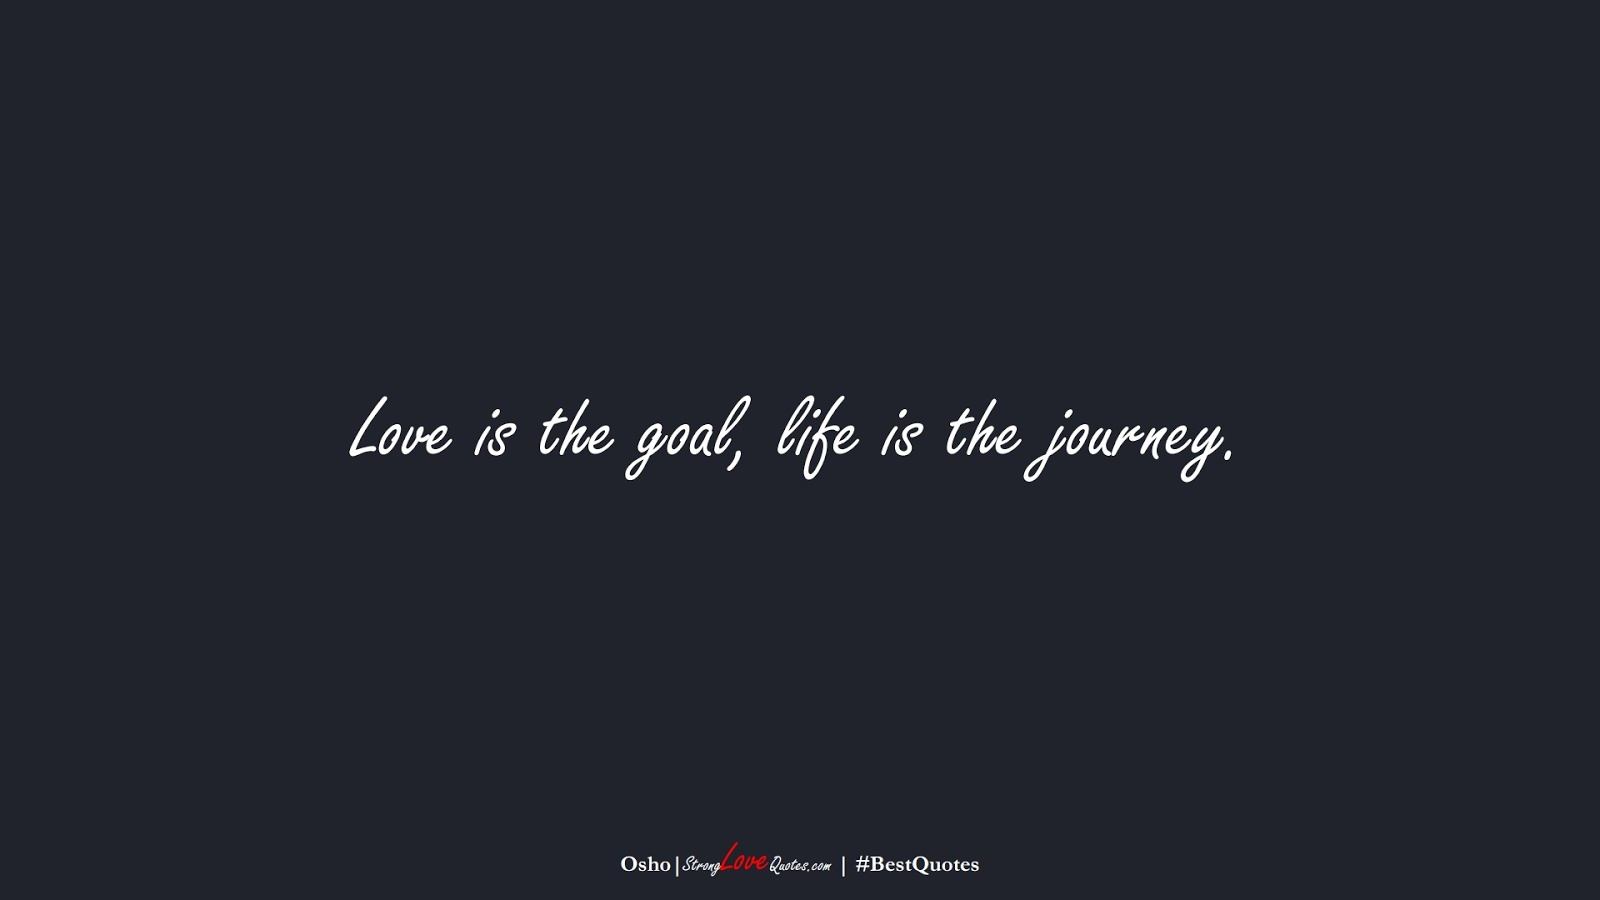 Love is the goal, life is the journey. (Osho);  #BestQuotes